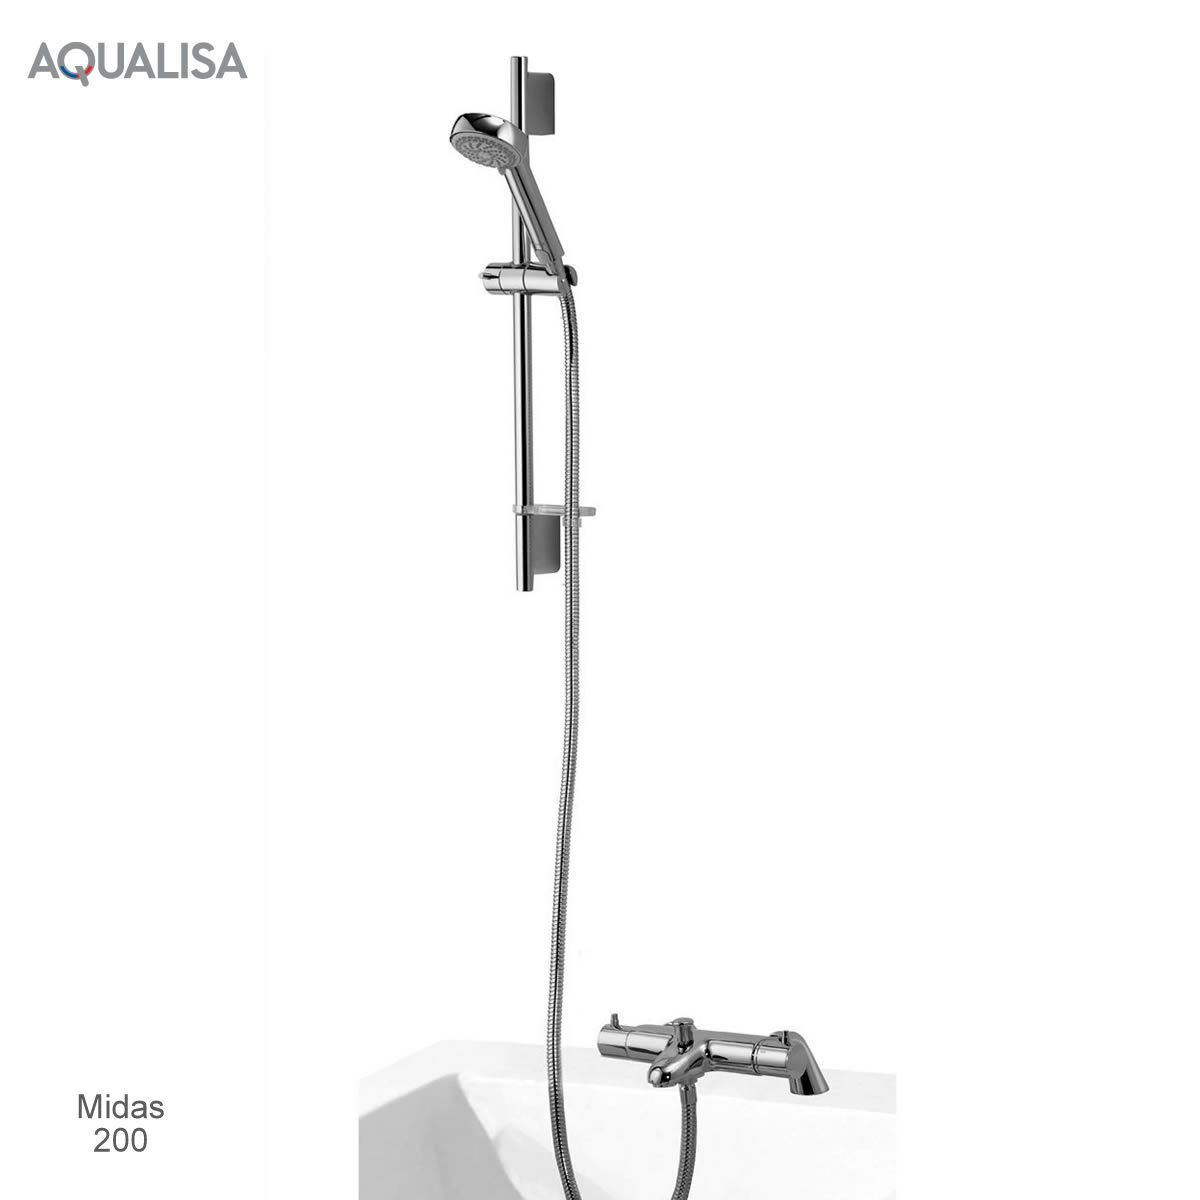 Aqualisa Midas Thermostatic Bath Shower Mixer Set Uk